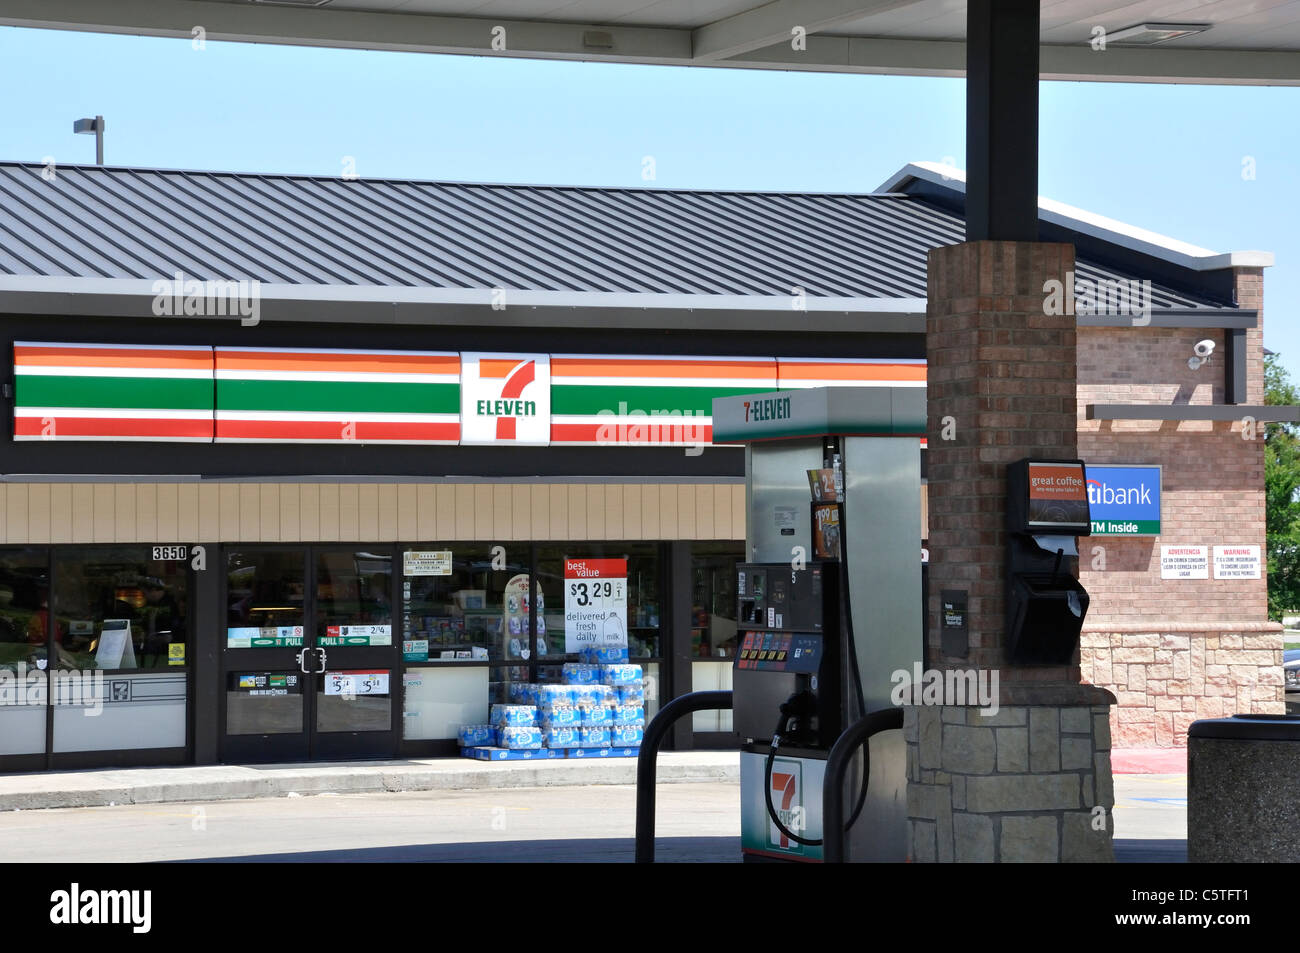 7 Eleven Gas Gas Station Stock Photos Amp 7 Eleven Gas Gas